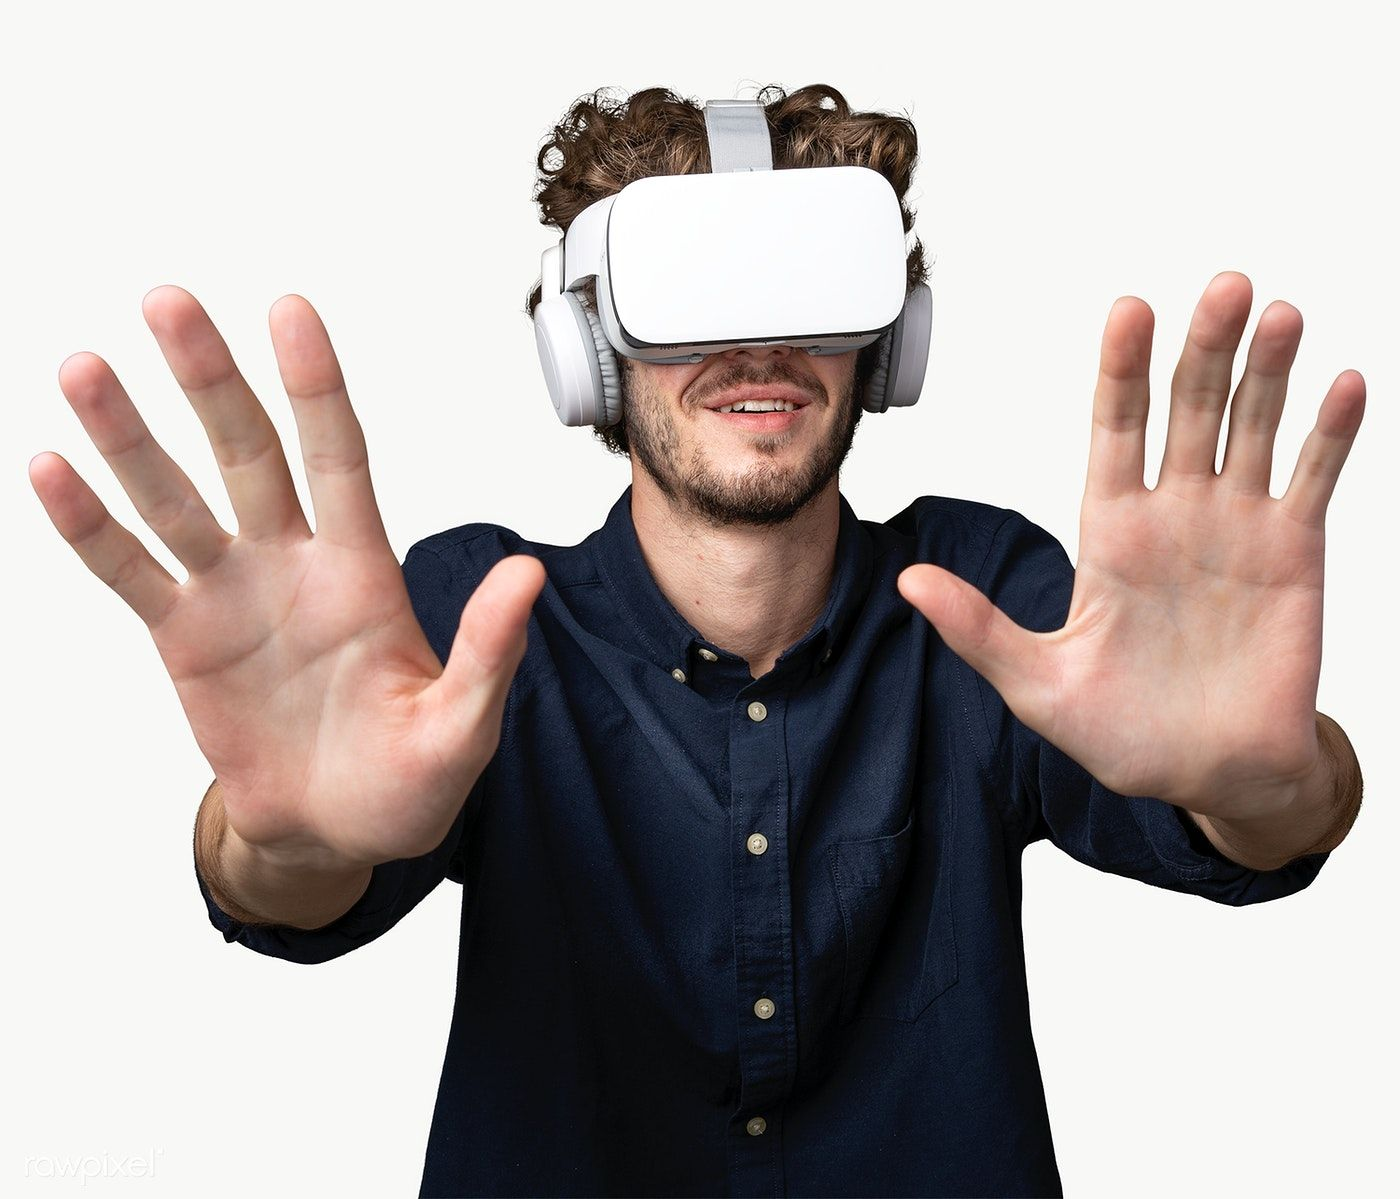 Download Premium Png Of Young Man Using A Vr Headset Transparent Png Vr Headset Virtual Reality Goggles Vr Goggles